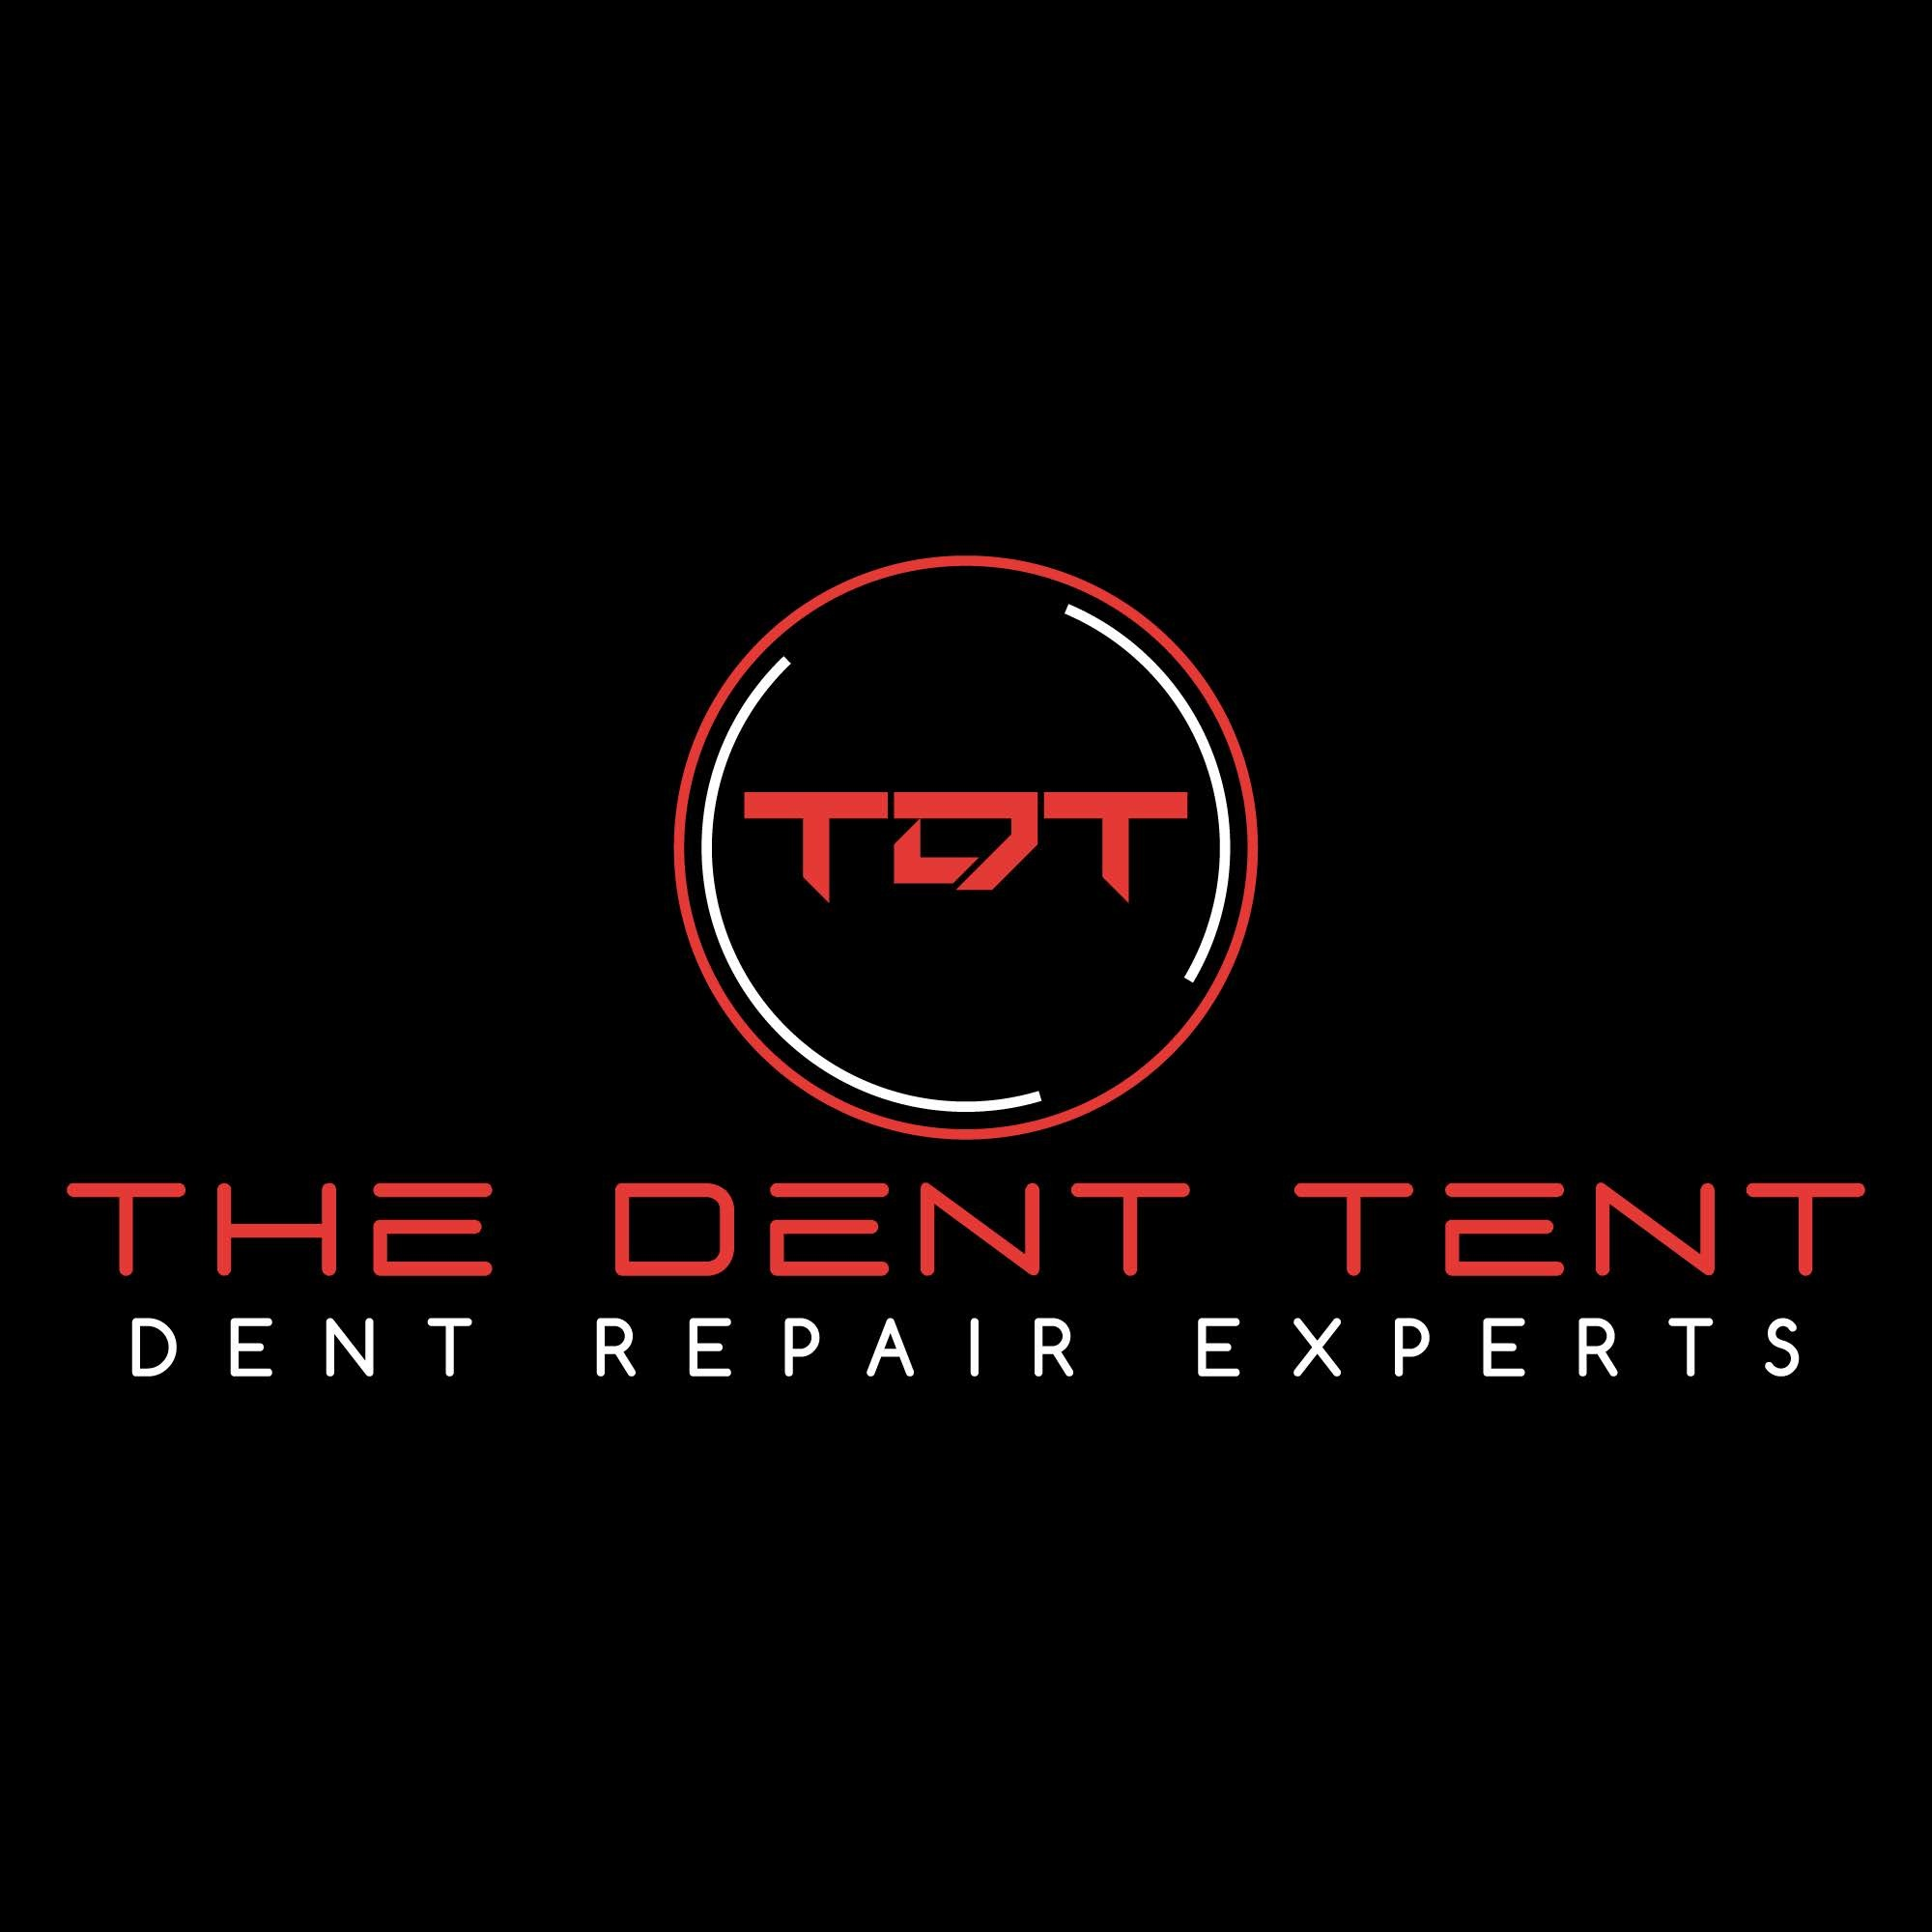 Dent Tent provides you with top notch body work and detailing.